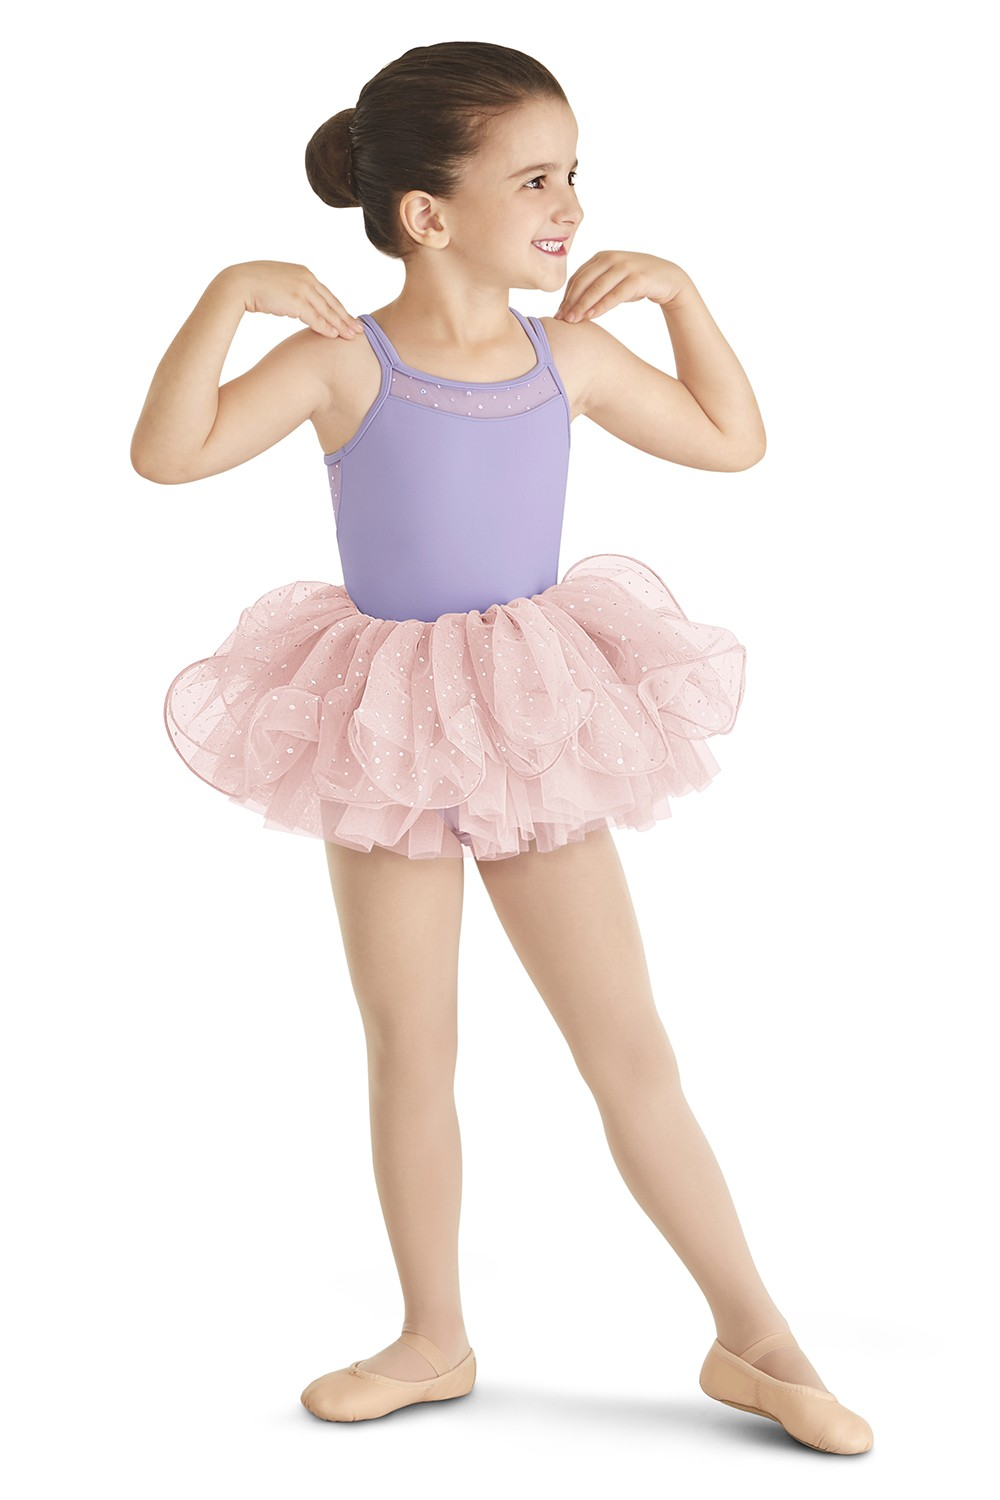 Tutulette Con Filo Metallico Children's Dance Skirts